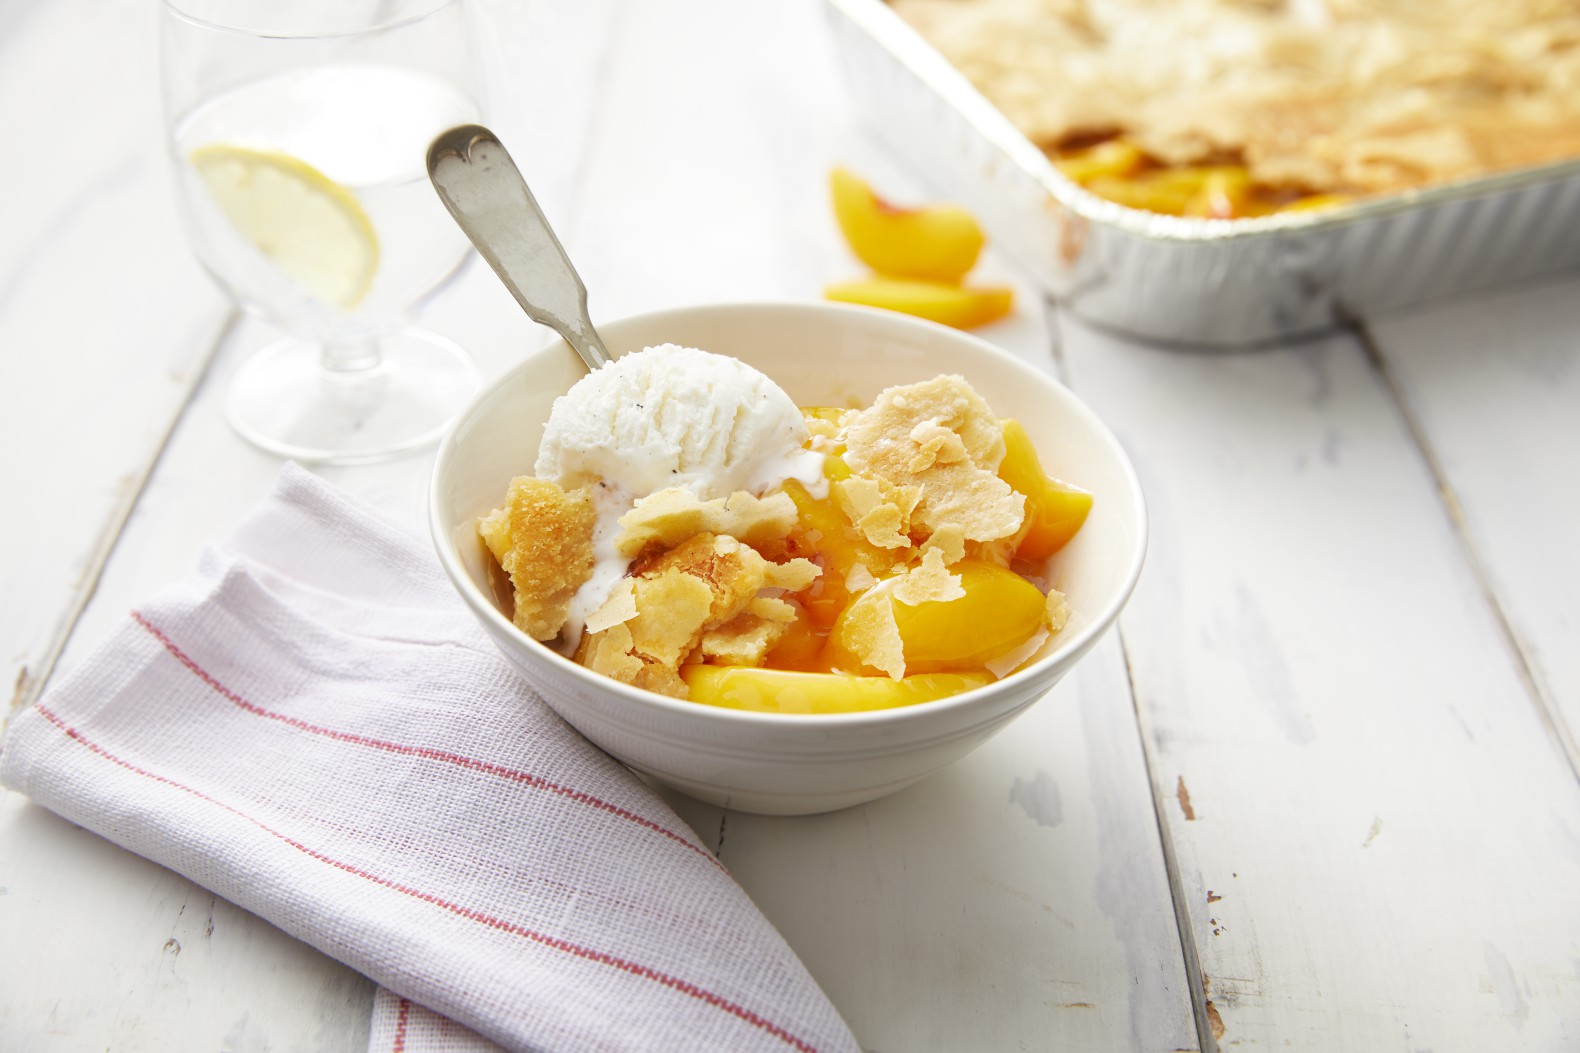 mrs_smith_s_classic_5_lb_ready_to_bake_peach_cobbler-4001271